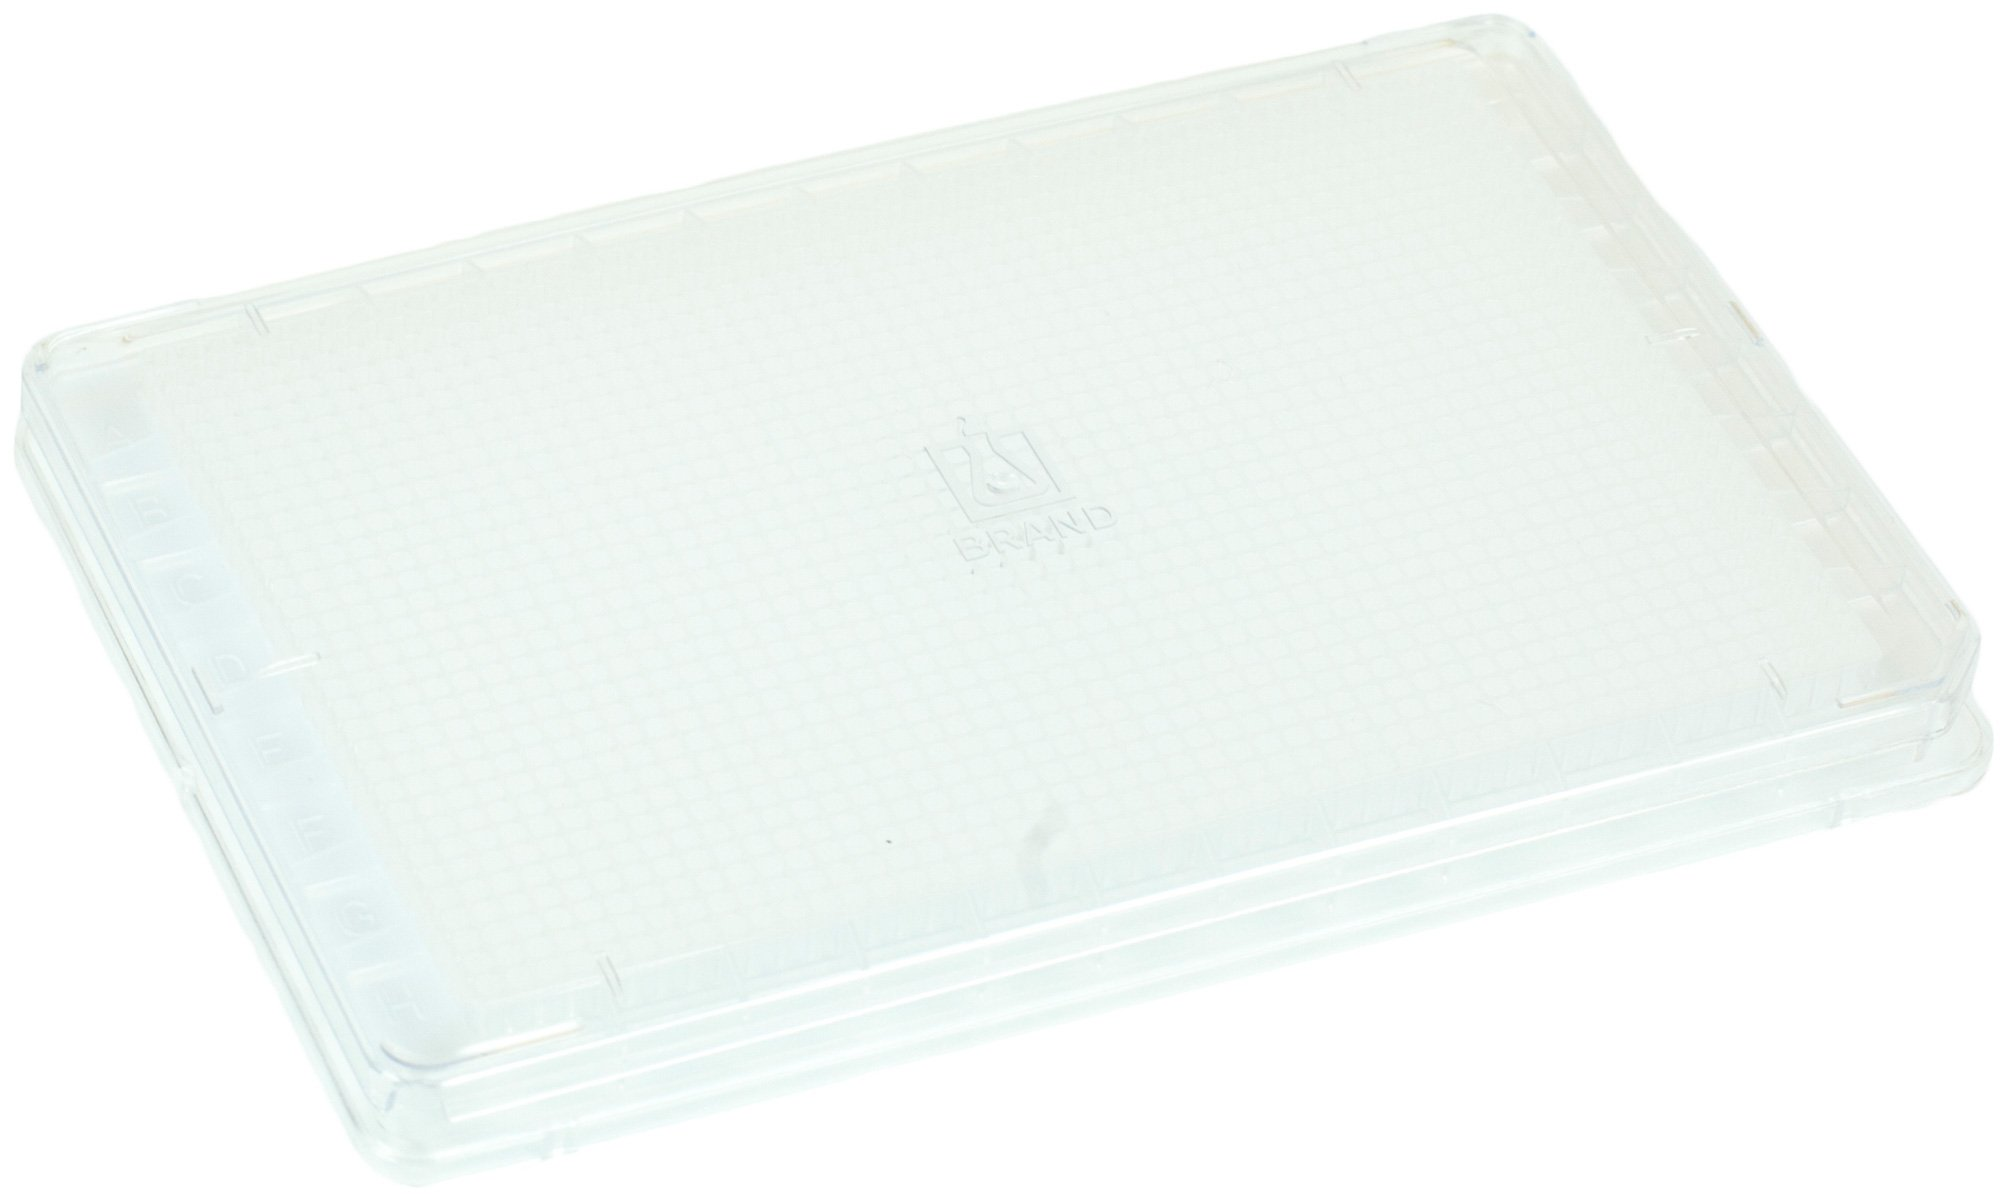 BRANDplates pureGrade S Non-Treated Sterile Surface 1536-Well Plate - Transparent, F-Bottom